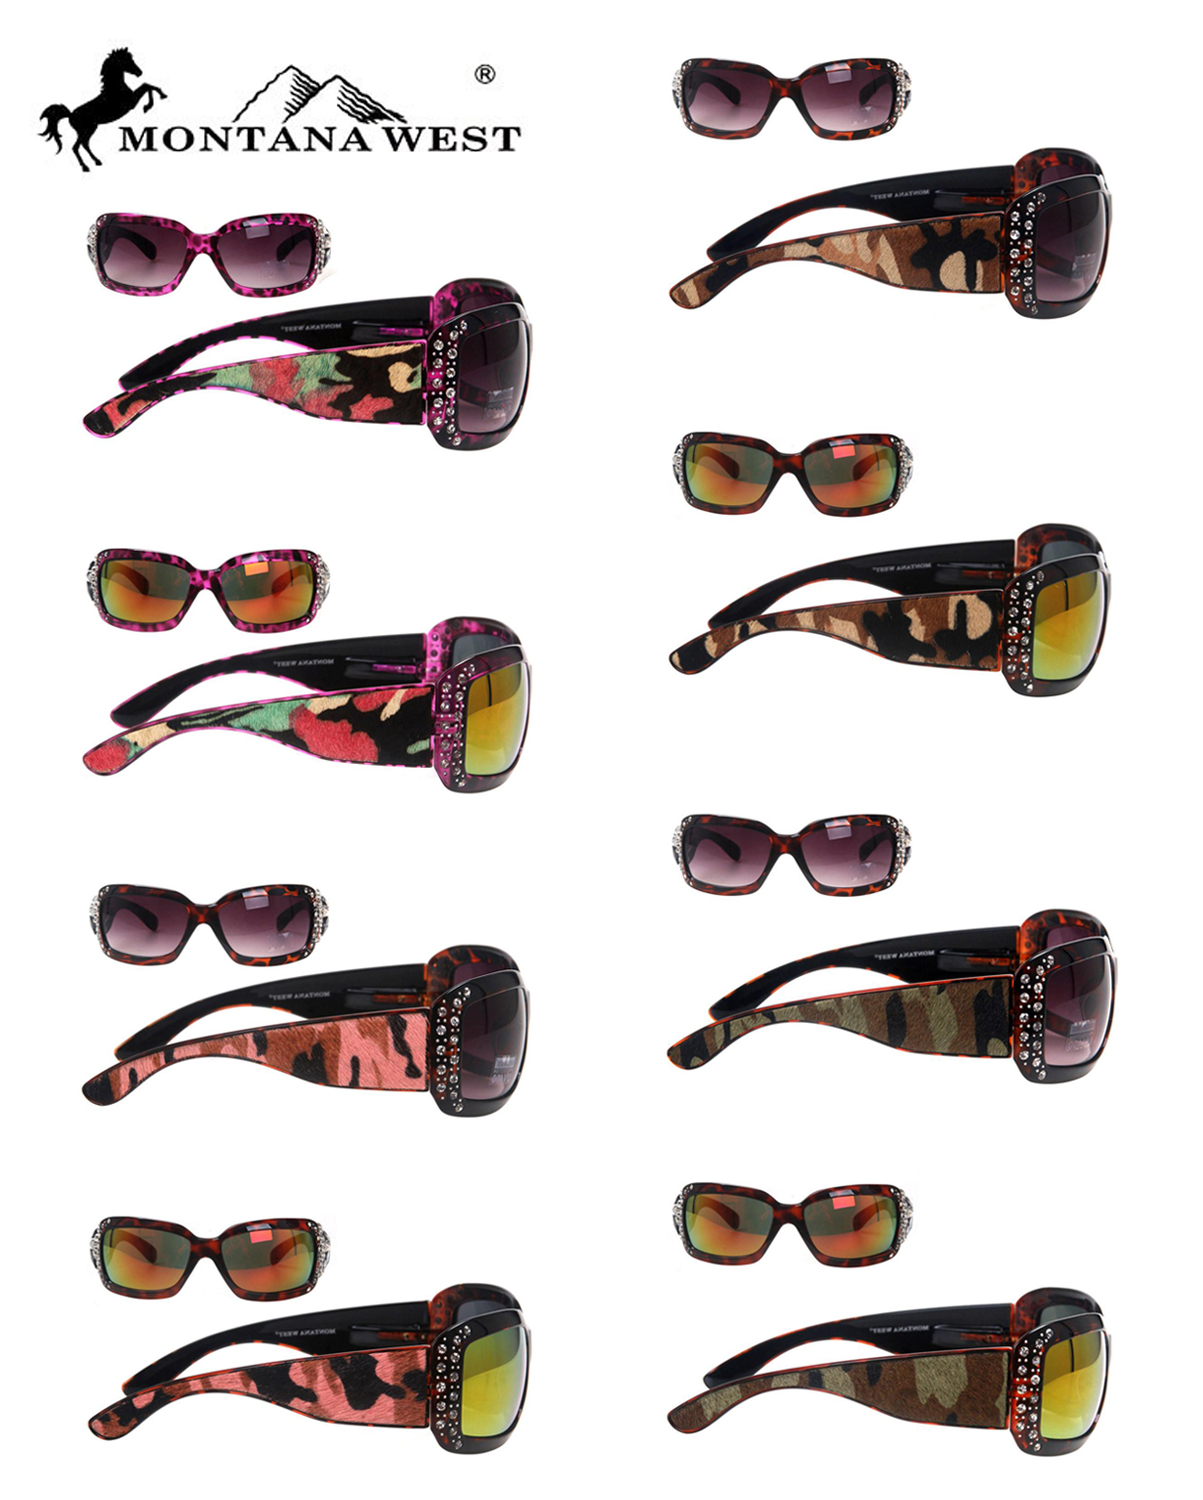 SGS23E-(SET-12PCS)-MW-wholesale-montana-west-sunglasses-set-12pcs-cowhide-rhinestones-silver-studs-assorted-lens(0).jpg